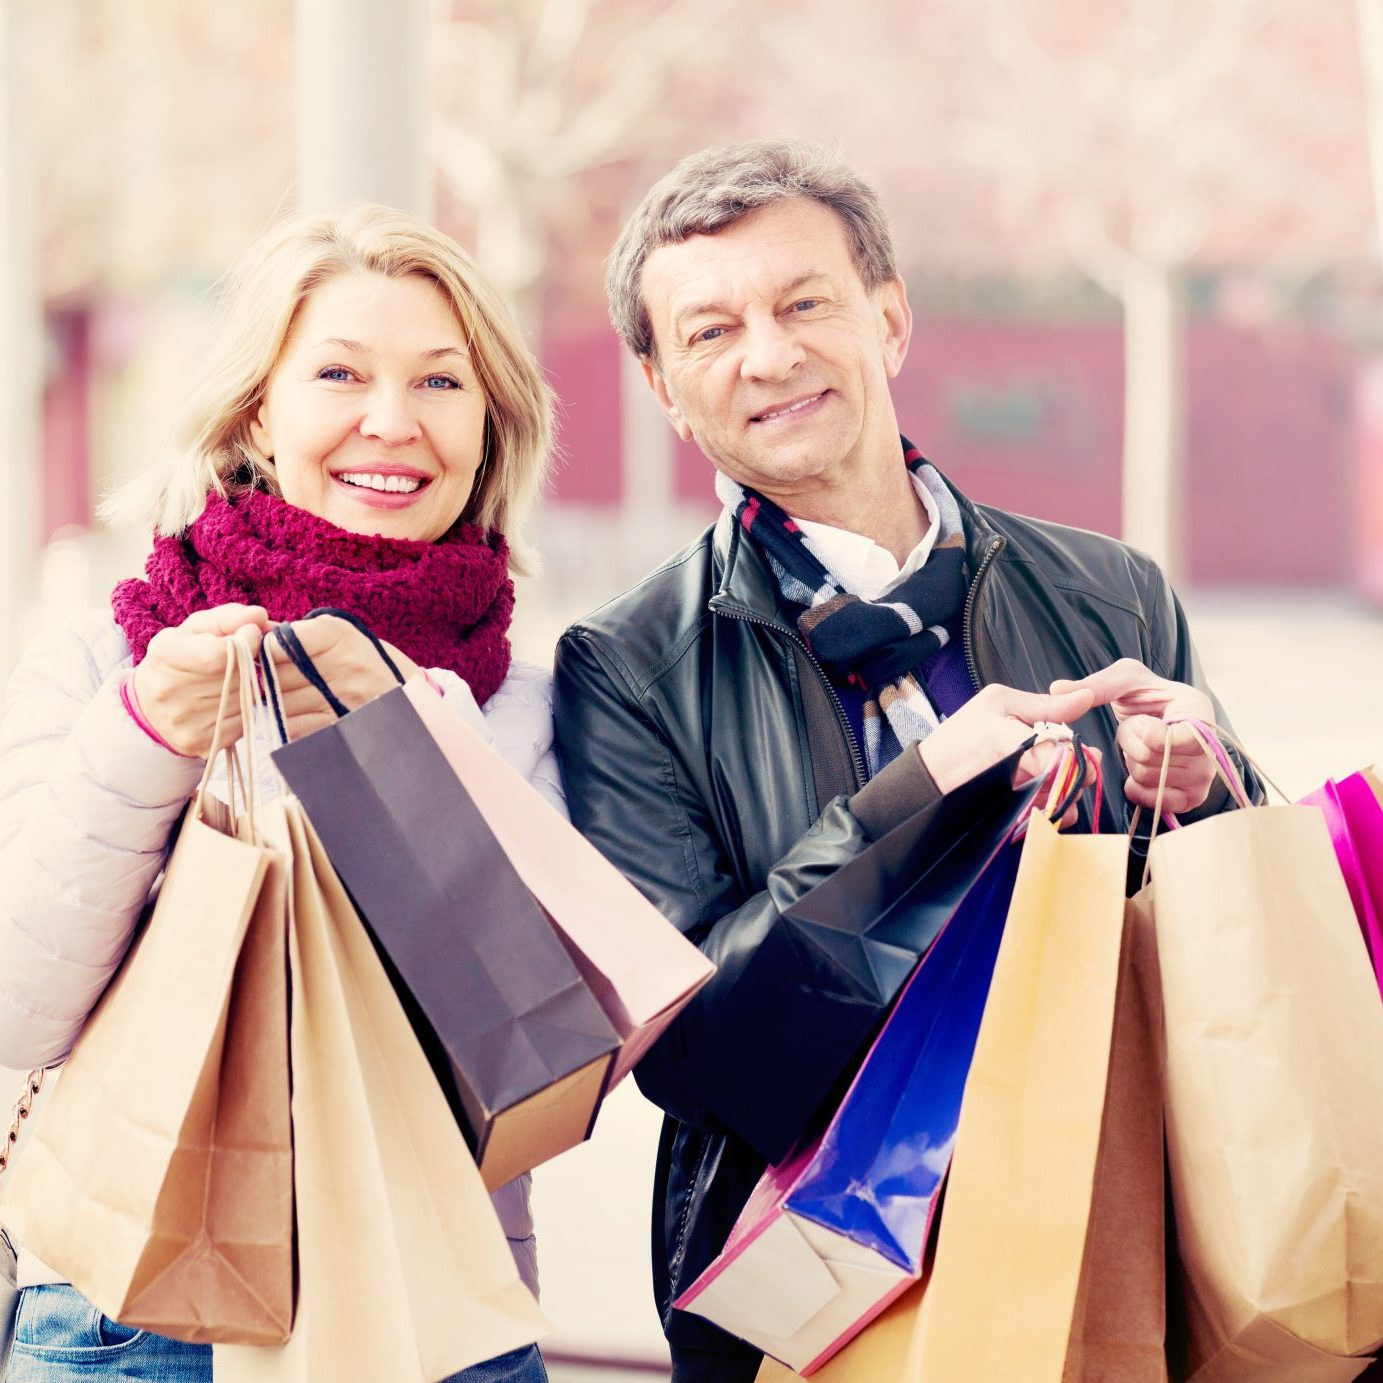 Happy smiling elderly spouses with shopping bags in spring day